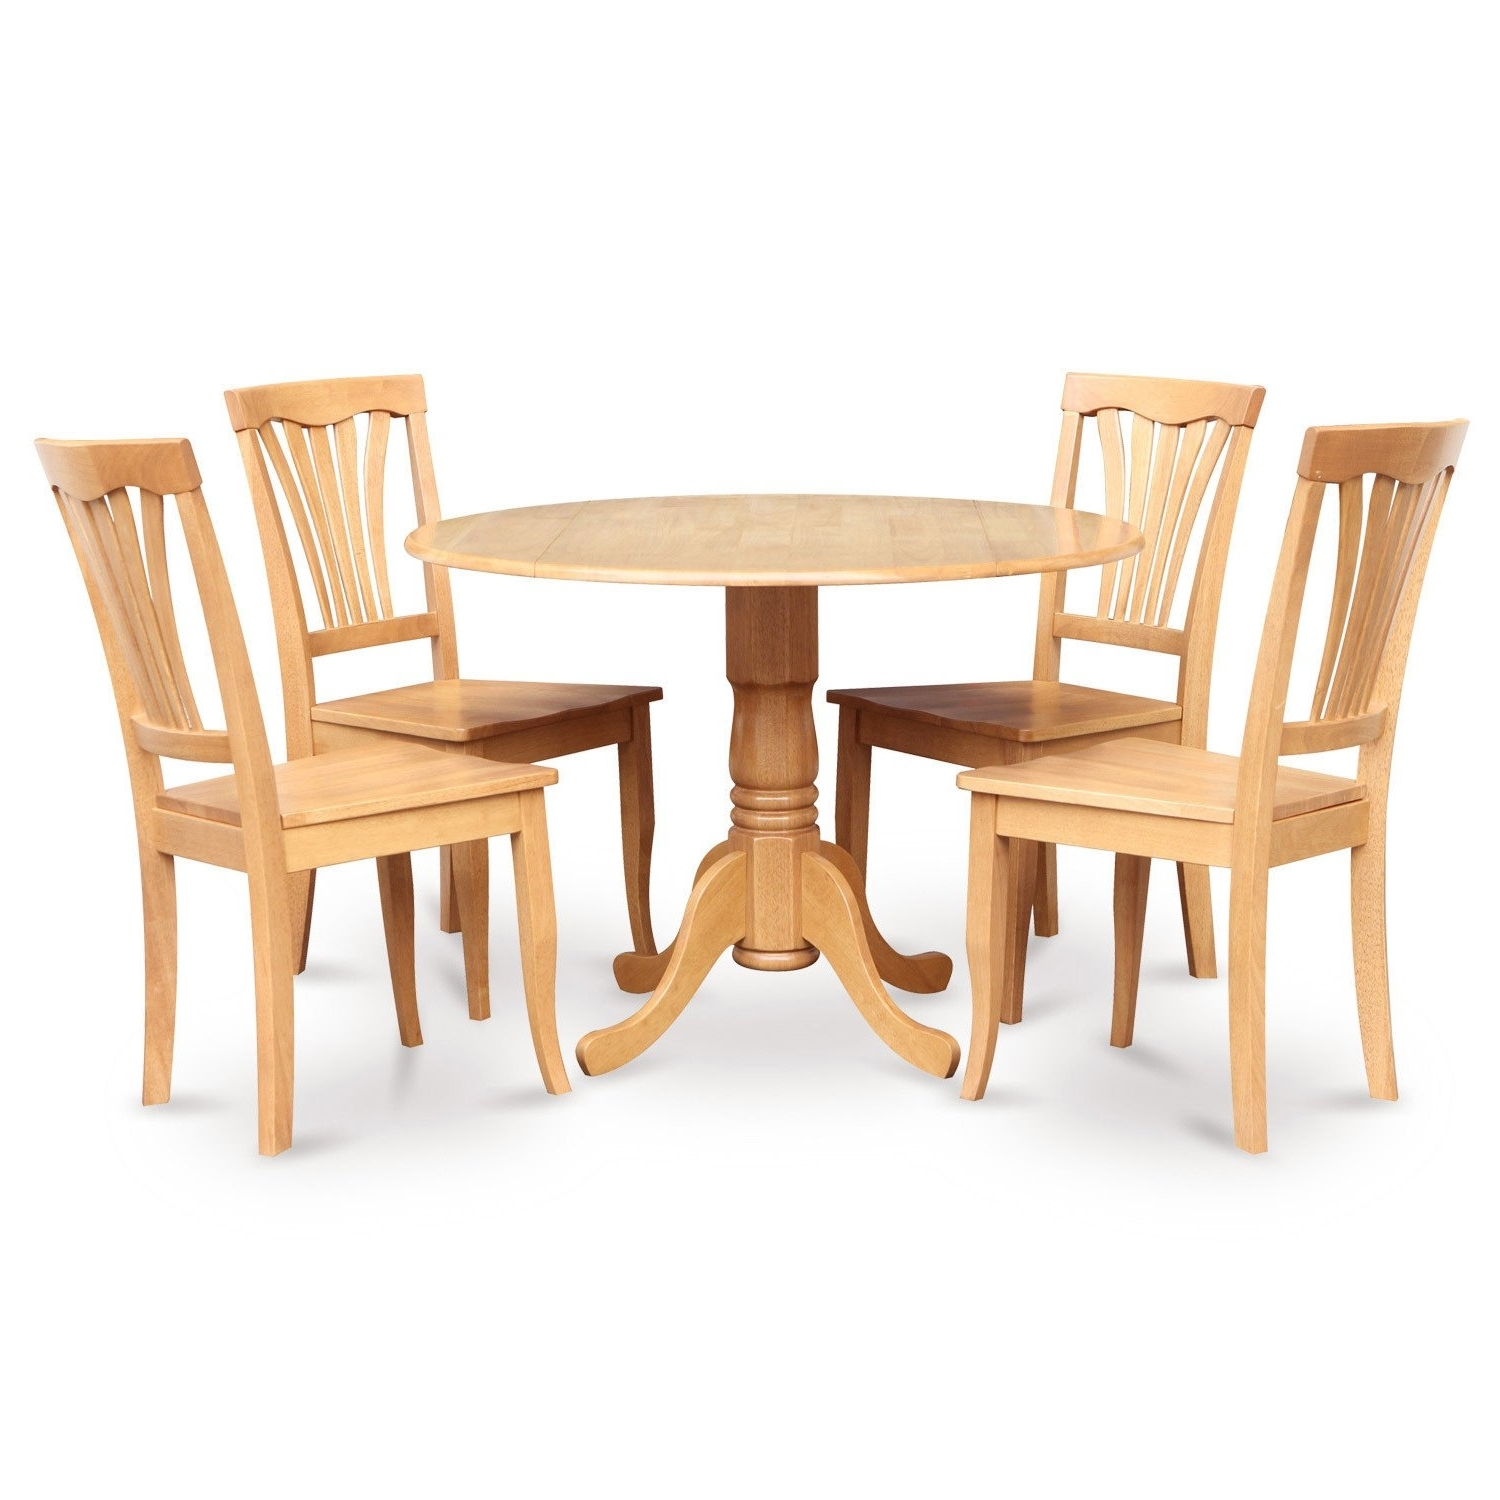 Well Known Oak Round Dining Tables And Chairs With Regard To Oak Round Kitchen Table And 4 Kitchen Chairs 5 Piece Dining Set Wood (View 23 of 25)